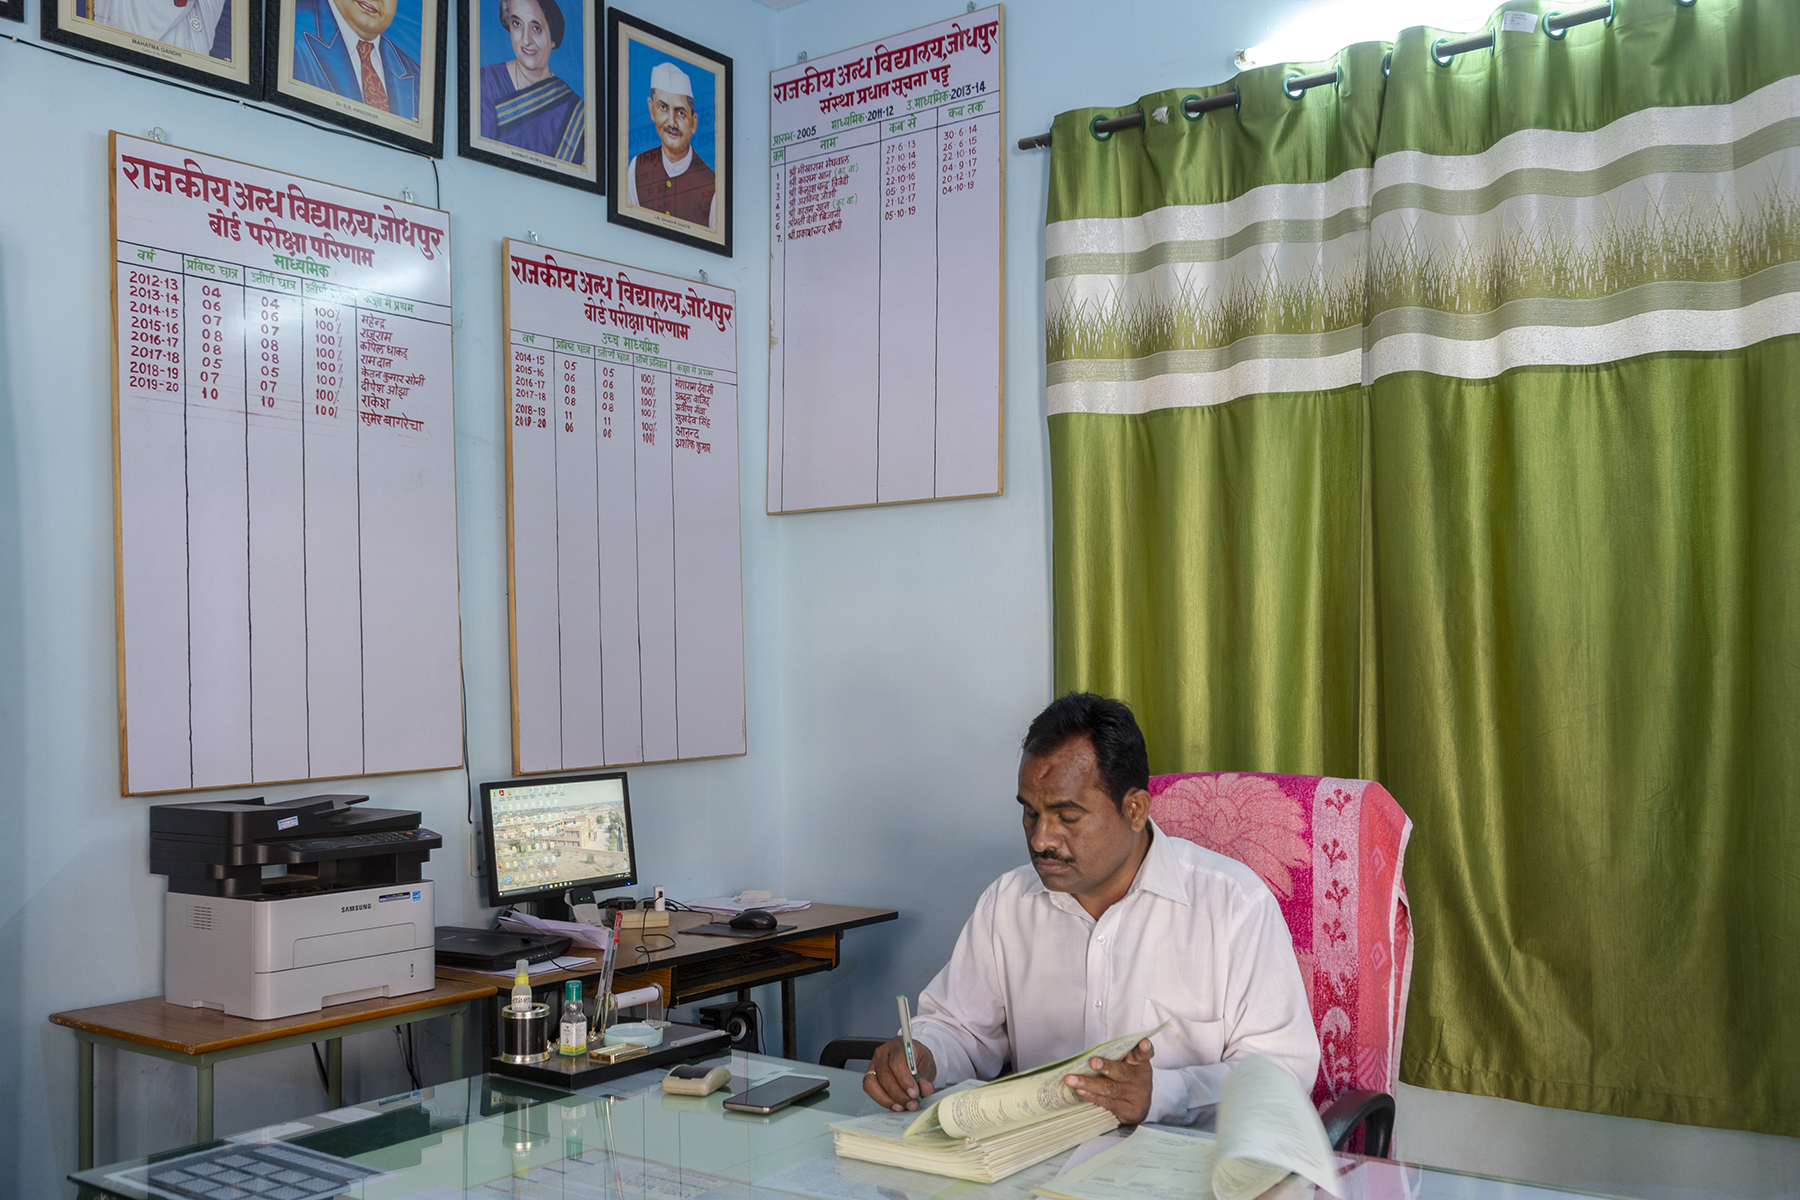 Prakash Chand, wearing a white full-sleeved shirt, sits in his office, holding a pen upright in a thick, open book. He sits at a long, glass-topped table and a green silken curtain covers the large window behind him. To the left is a long, narrow table with a printer and a computer. Three large white boards hang on the wall with letters painted in red in Hindi. The heading says Rajkeeya Andha Vidyalaya, Jodhpur. Two of the boards list the board exam results for different years and the names of the top rankers. The third board has the names of former principals and their term of office; the last name is that of the current principal, Prakash Chand, who took charge on 5-10-2019.